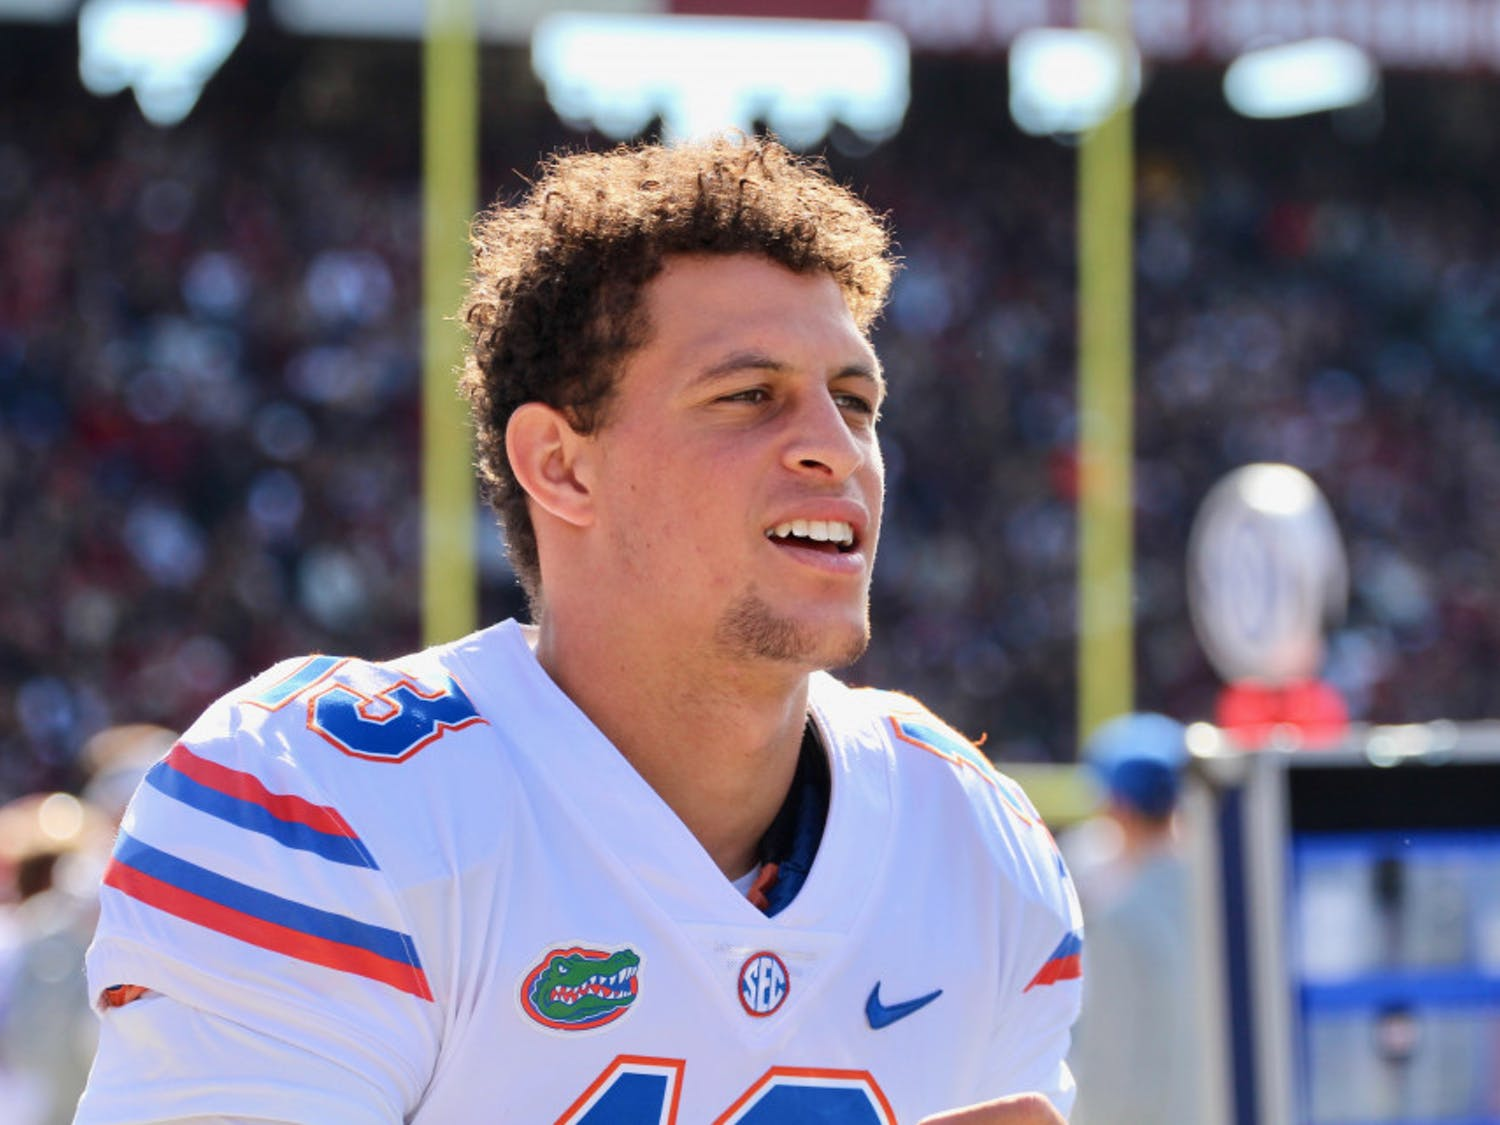 Feleipe Franks threw a career-high three interceptions and also lost one fumble in Florida's 38-22 defeat to Florida State.